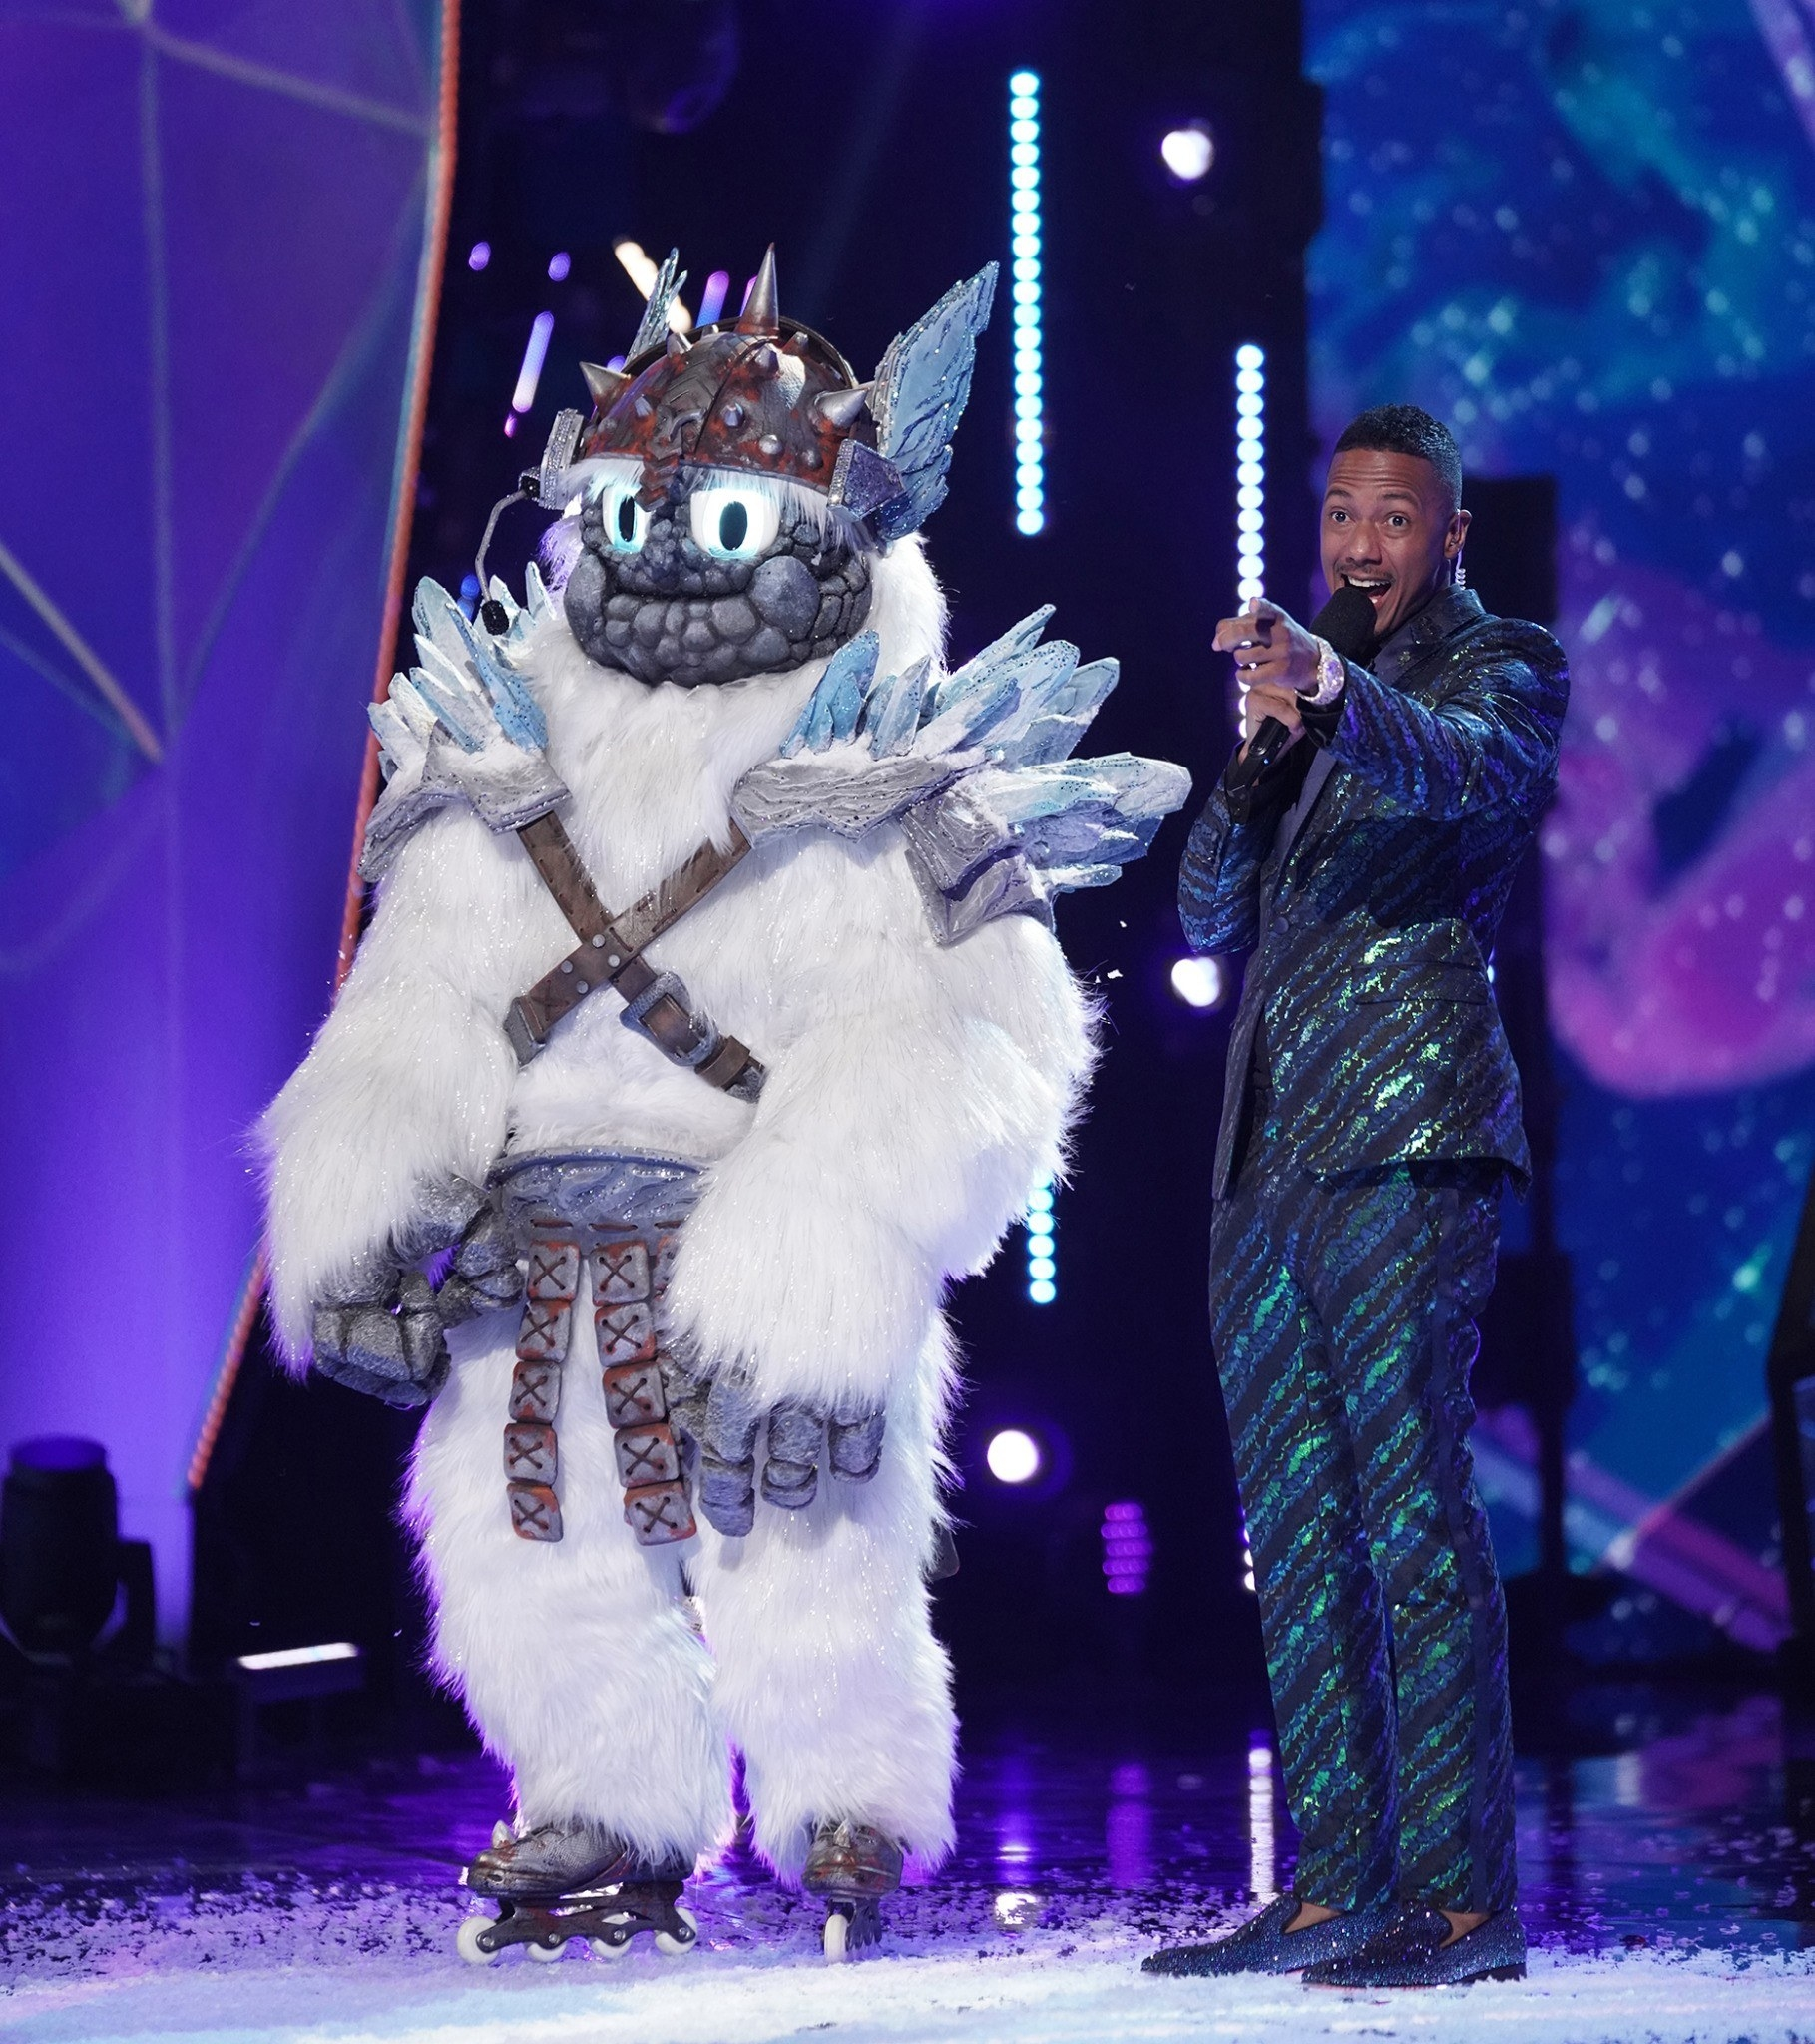 A scene from The Masked Singer with Nick Cannon and the Yeti